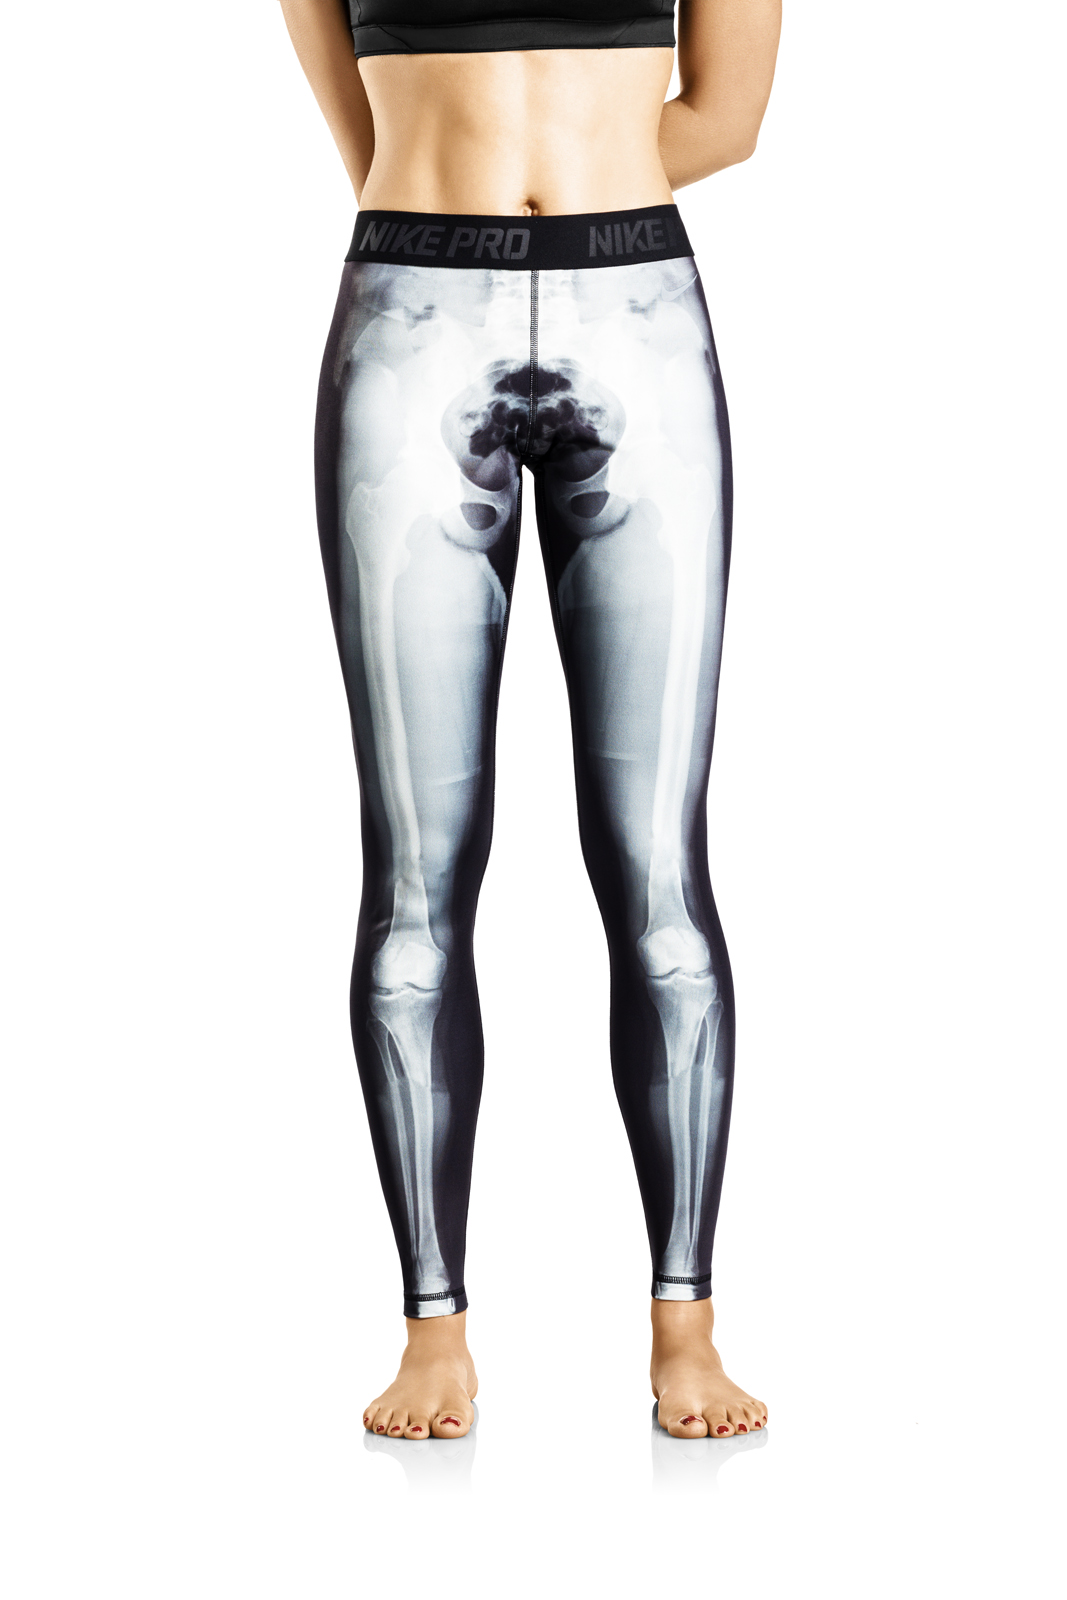 LO · HI. Nike's Exclusive Print Tight Shows What Women ...